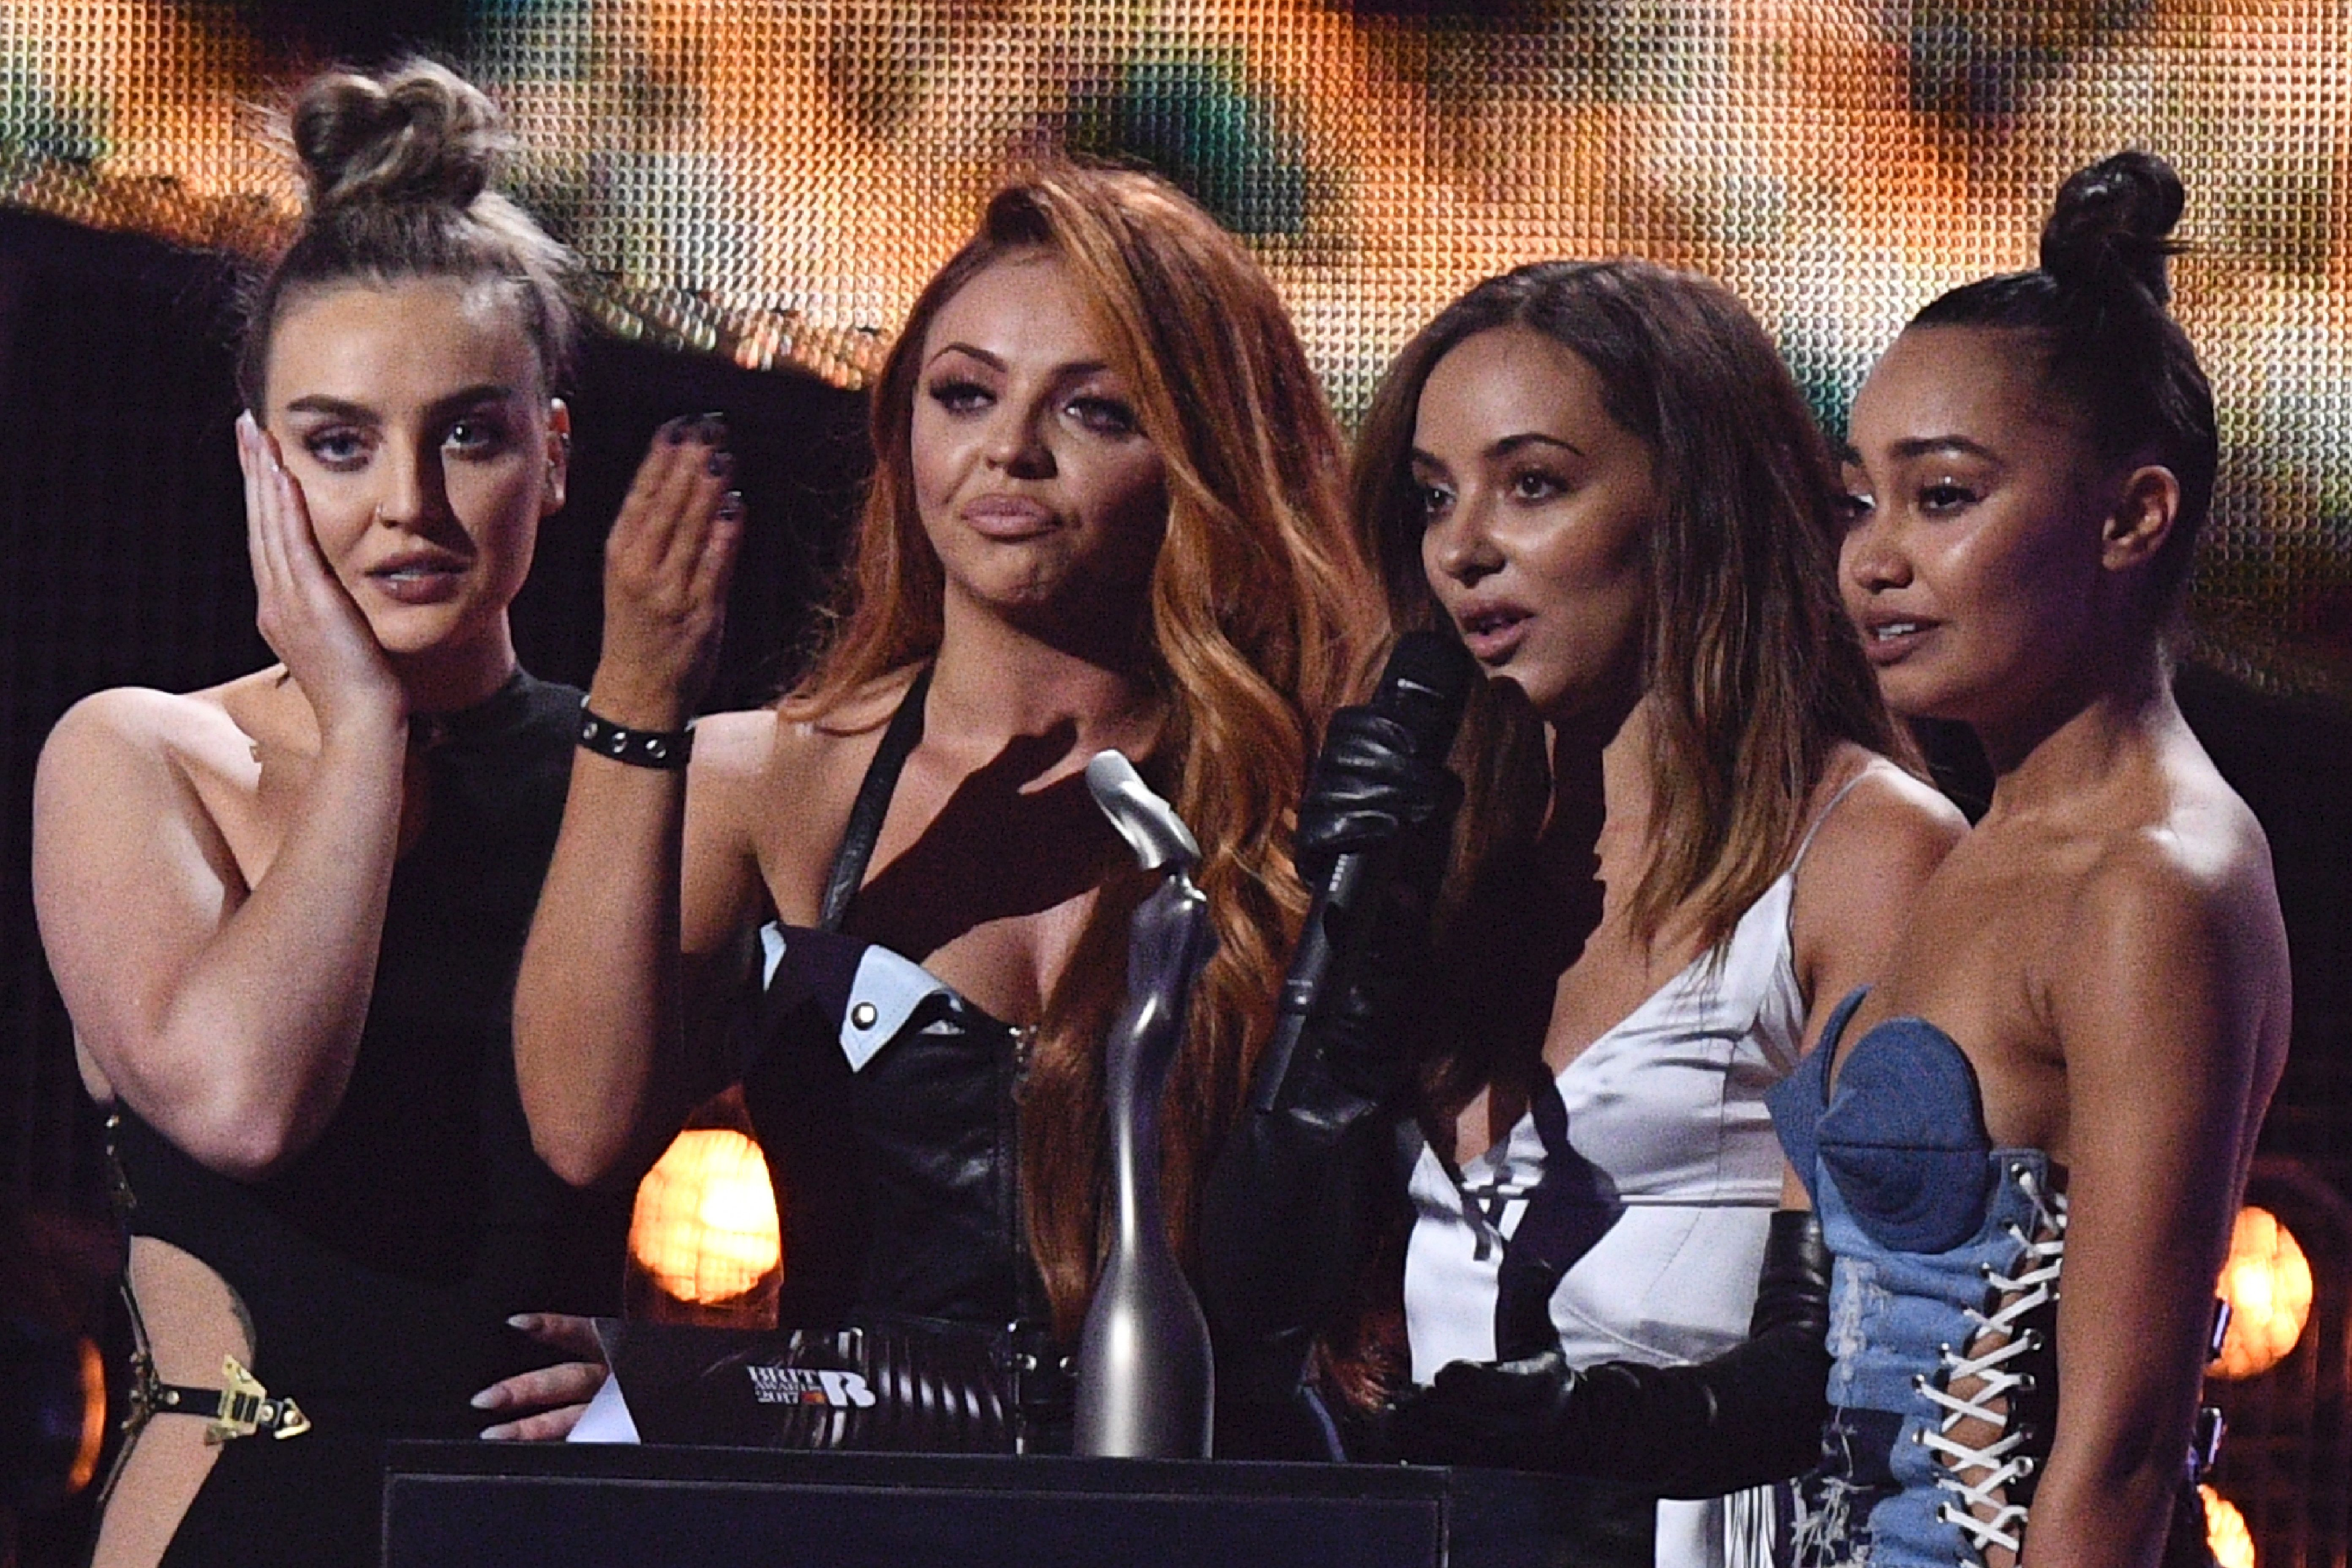 Bookies slash odds on Little Mix splitting up and this is why we're not allowed nice things